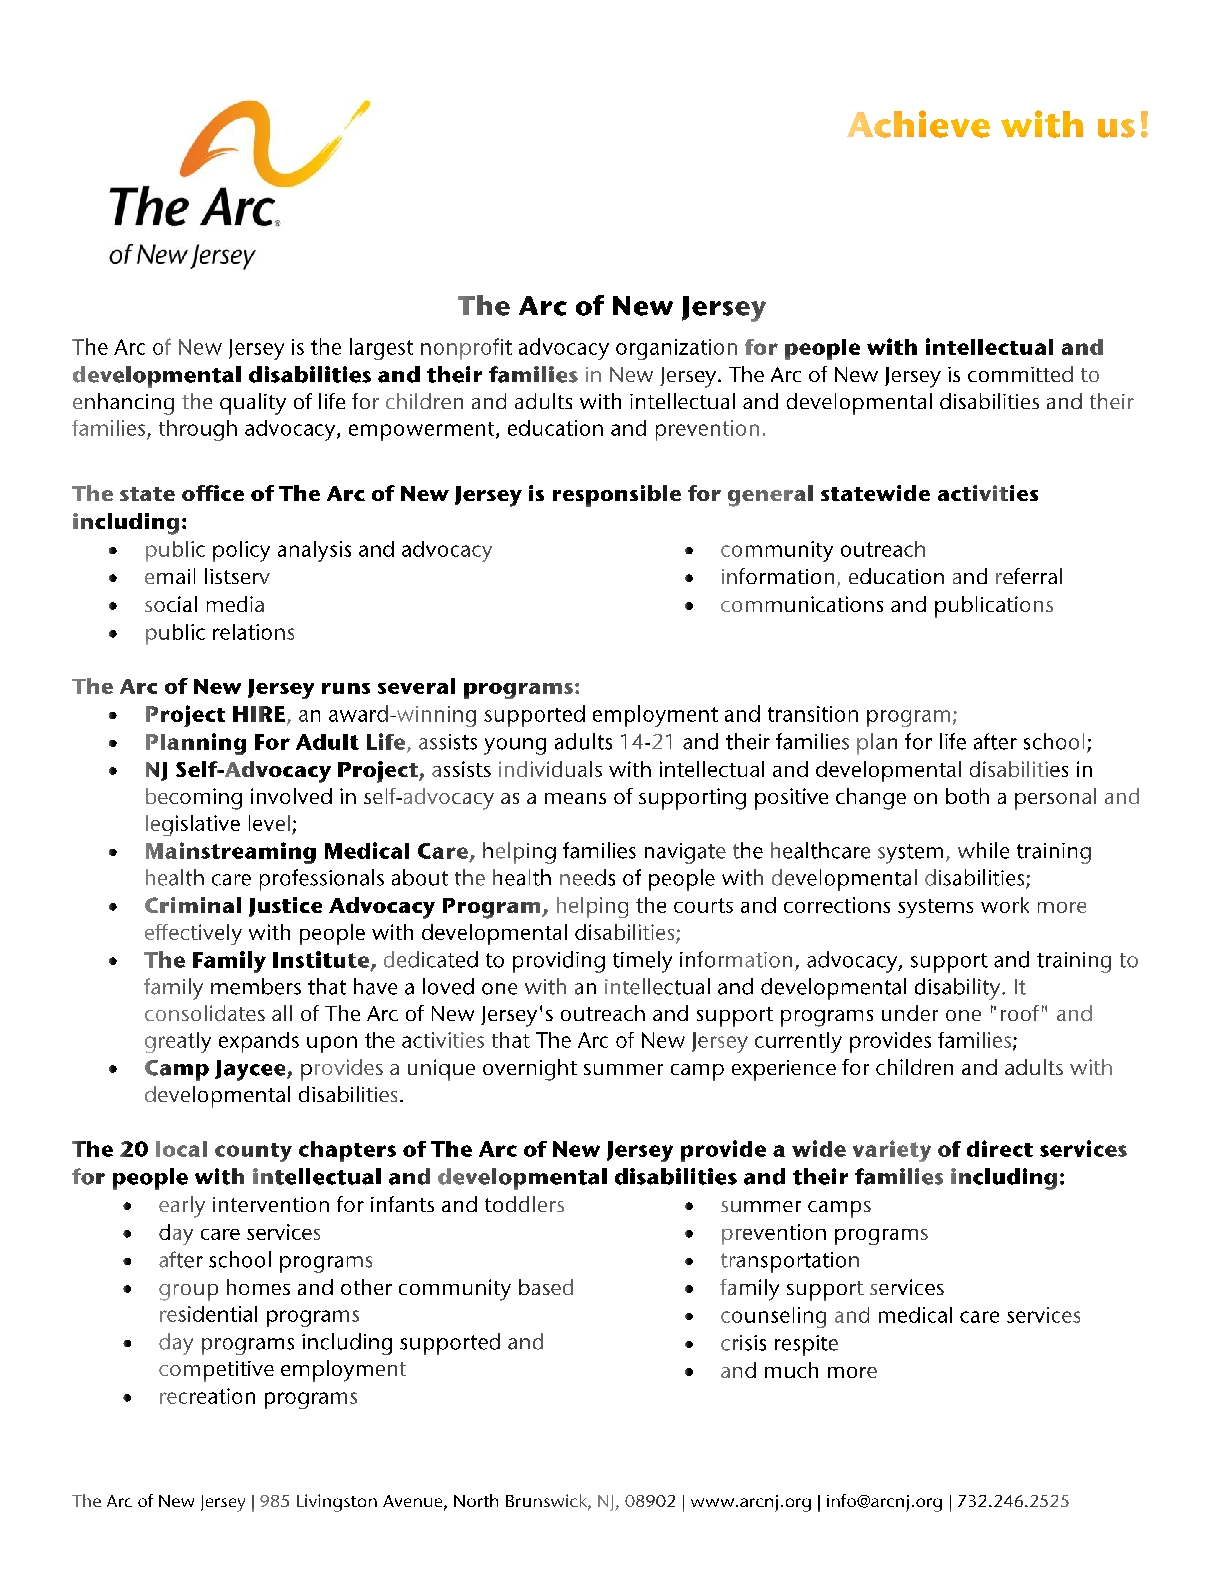 About The Arc of New Jersey